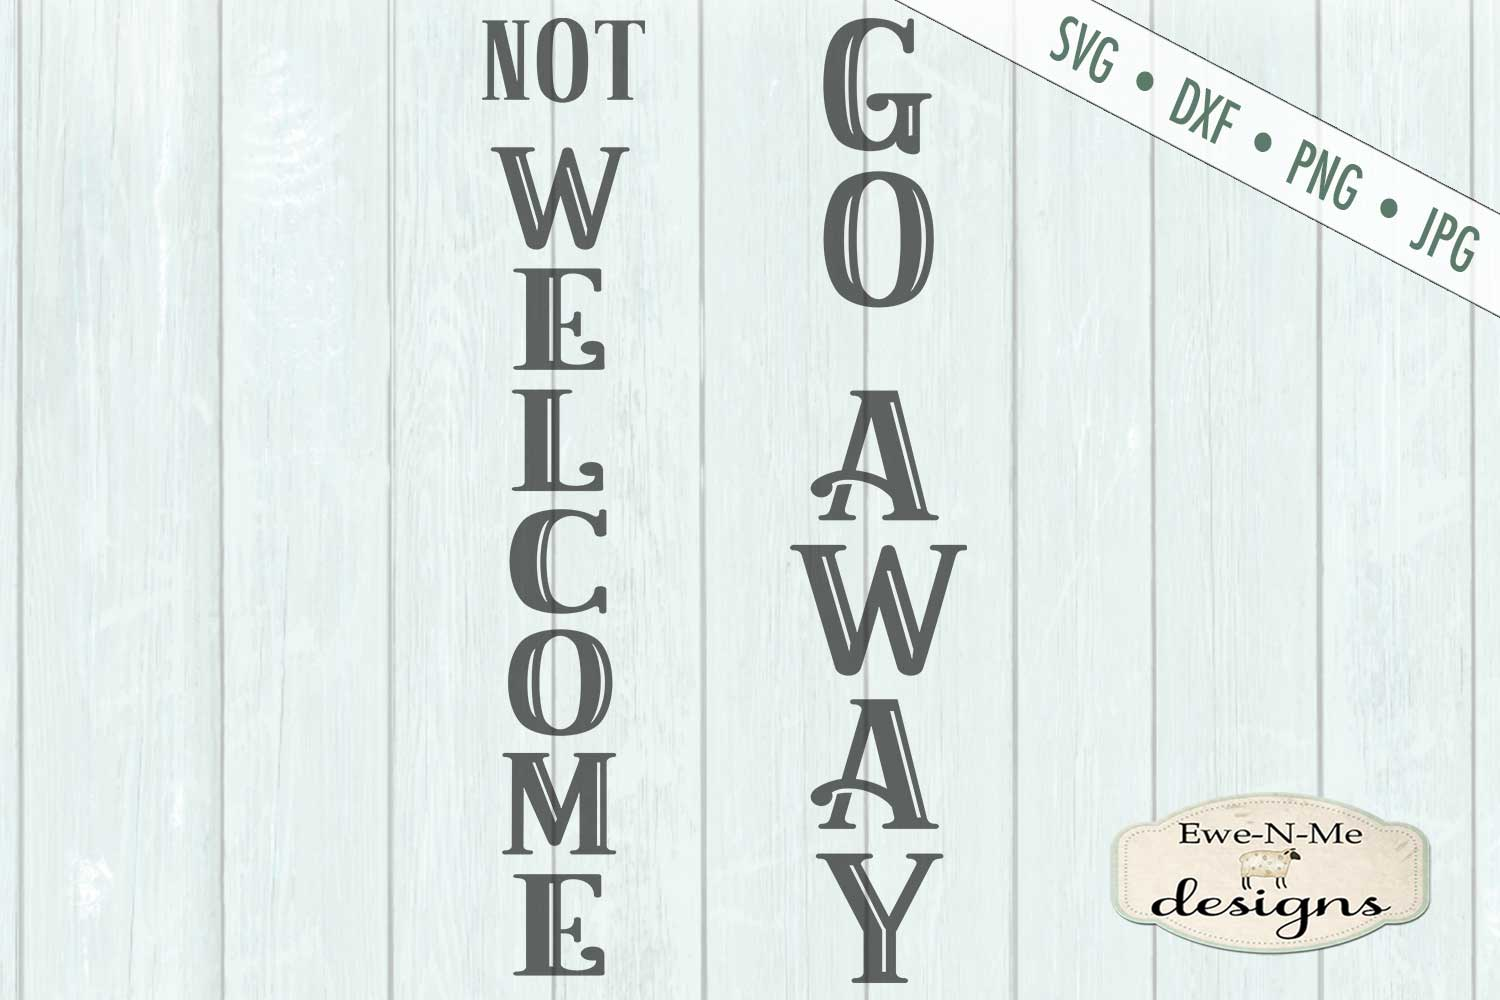 Sarcastic Not Welcome - Go Away - Porch Sign - SVG DXF Files example image 2